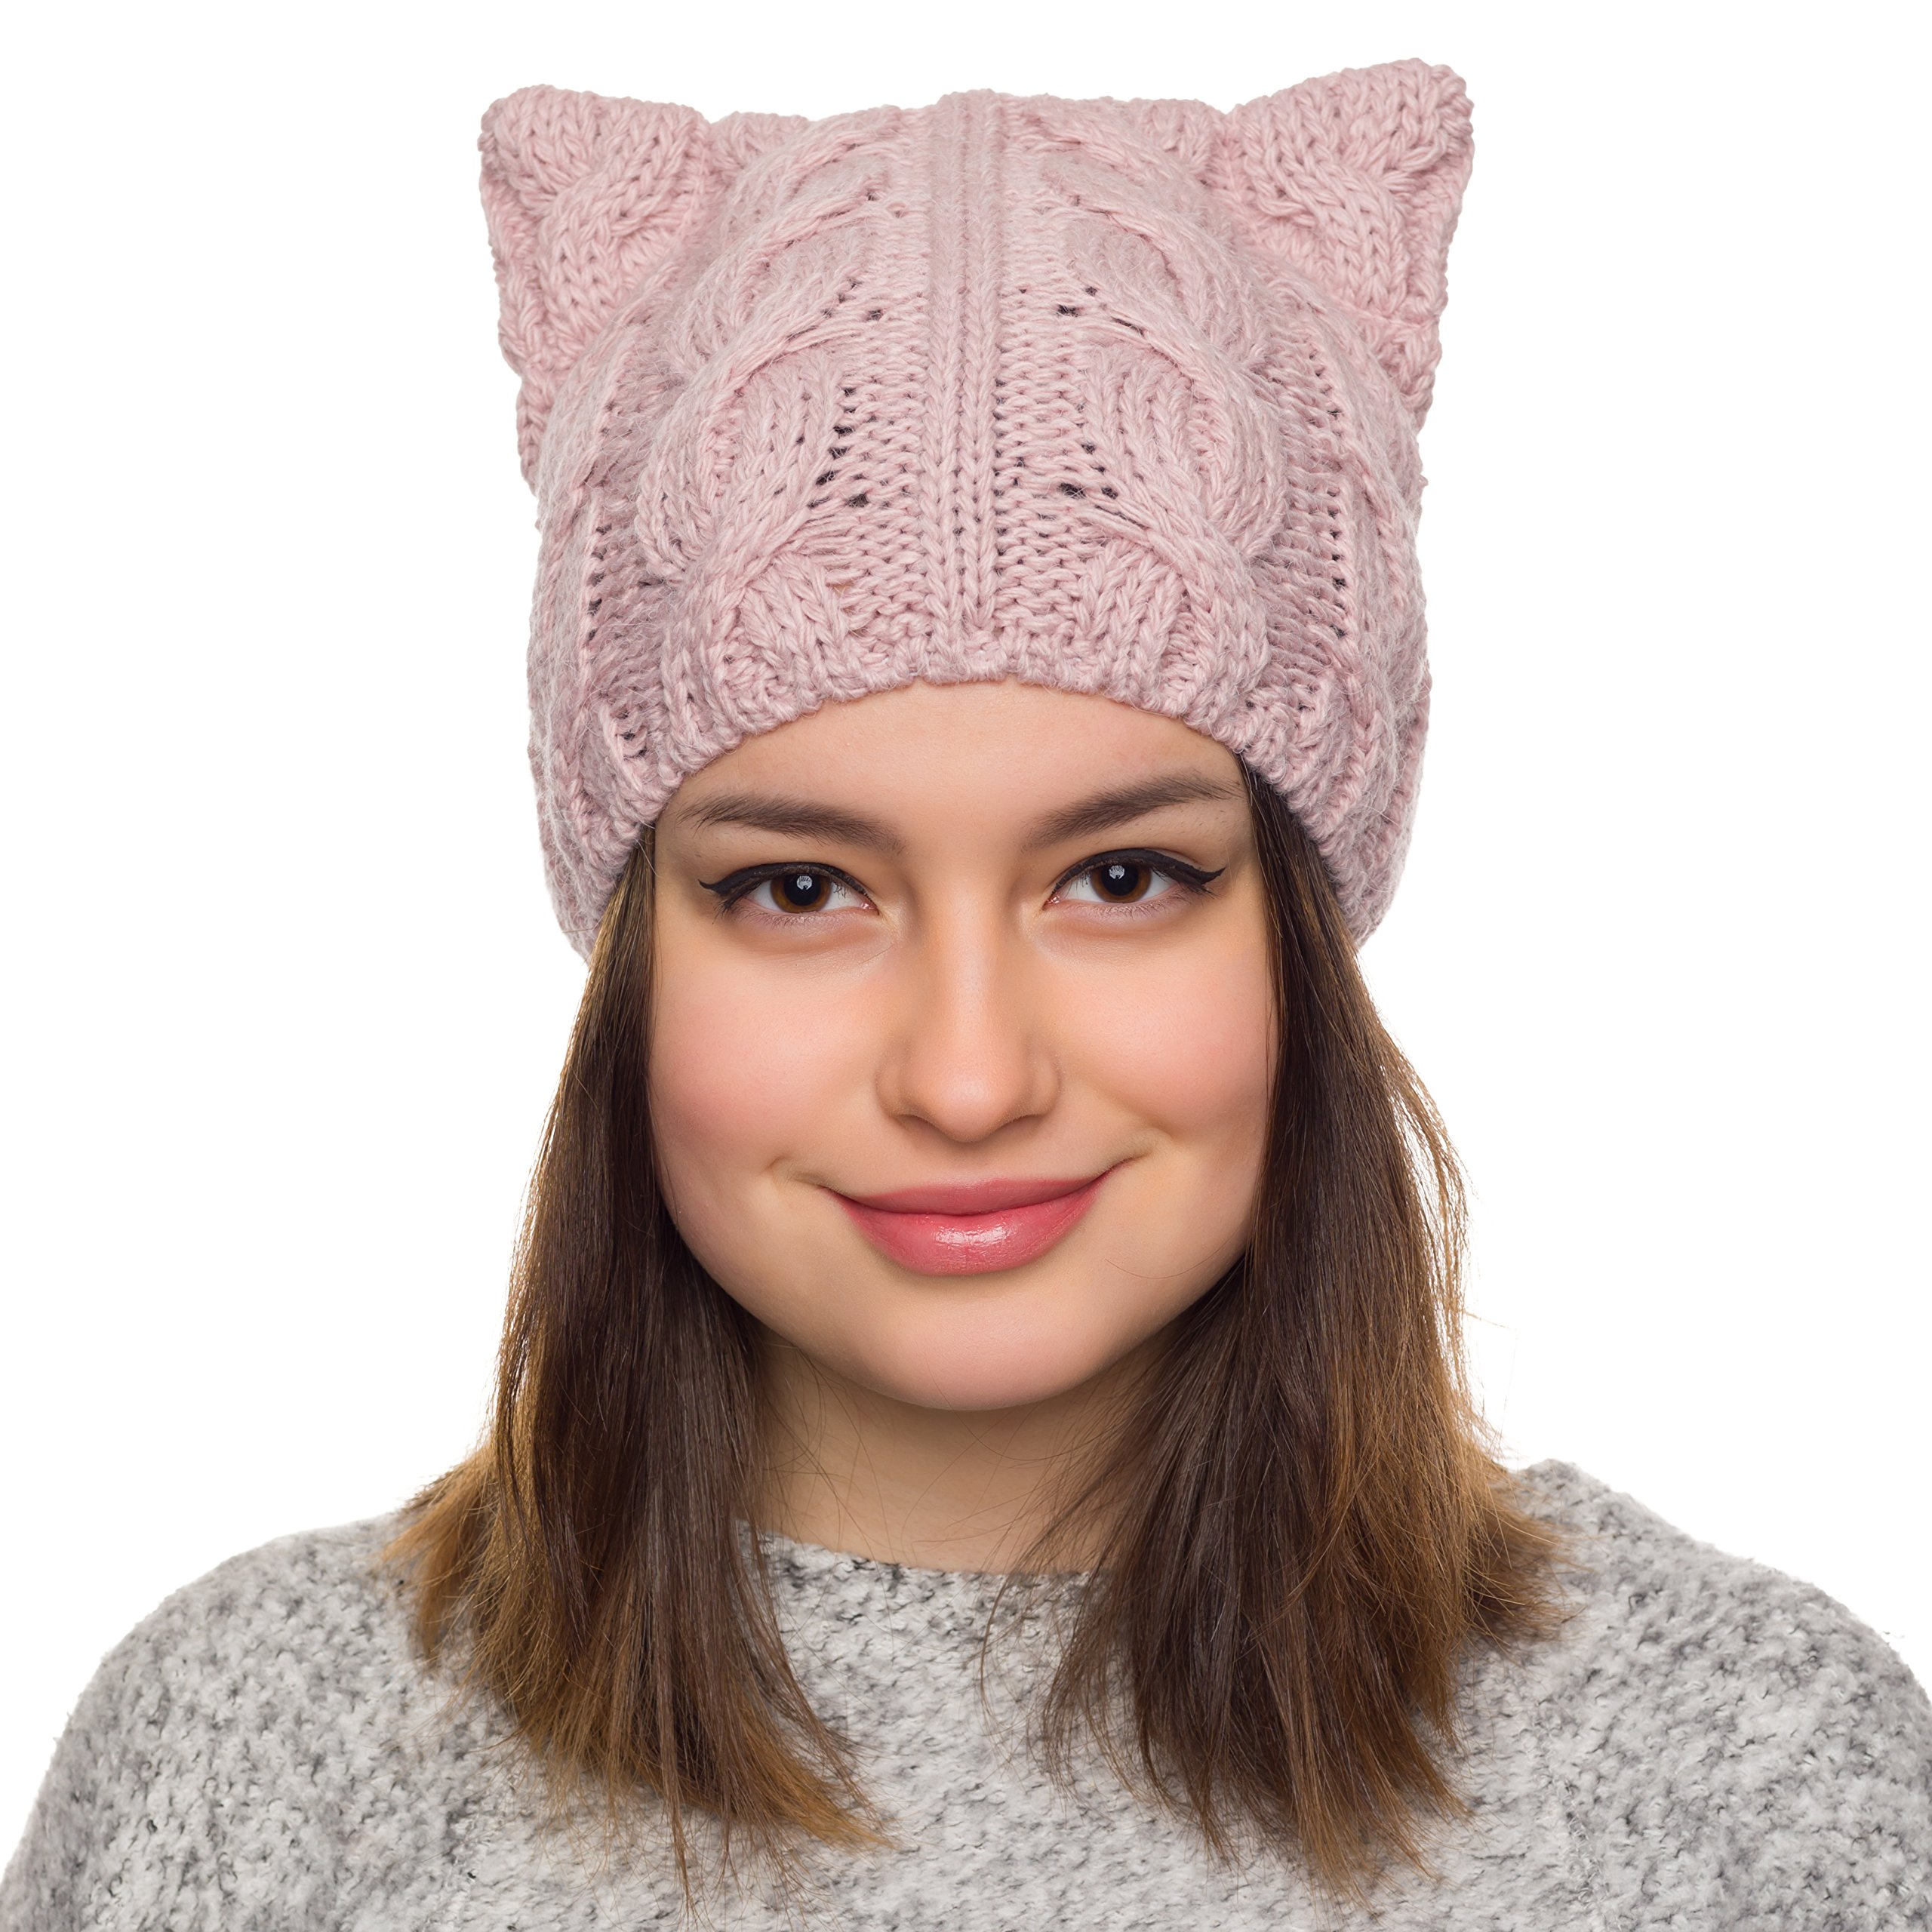 PussyCat Hat Womens March-Spring Hats for women-Cable knit beanie (Dusty pink)